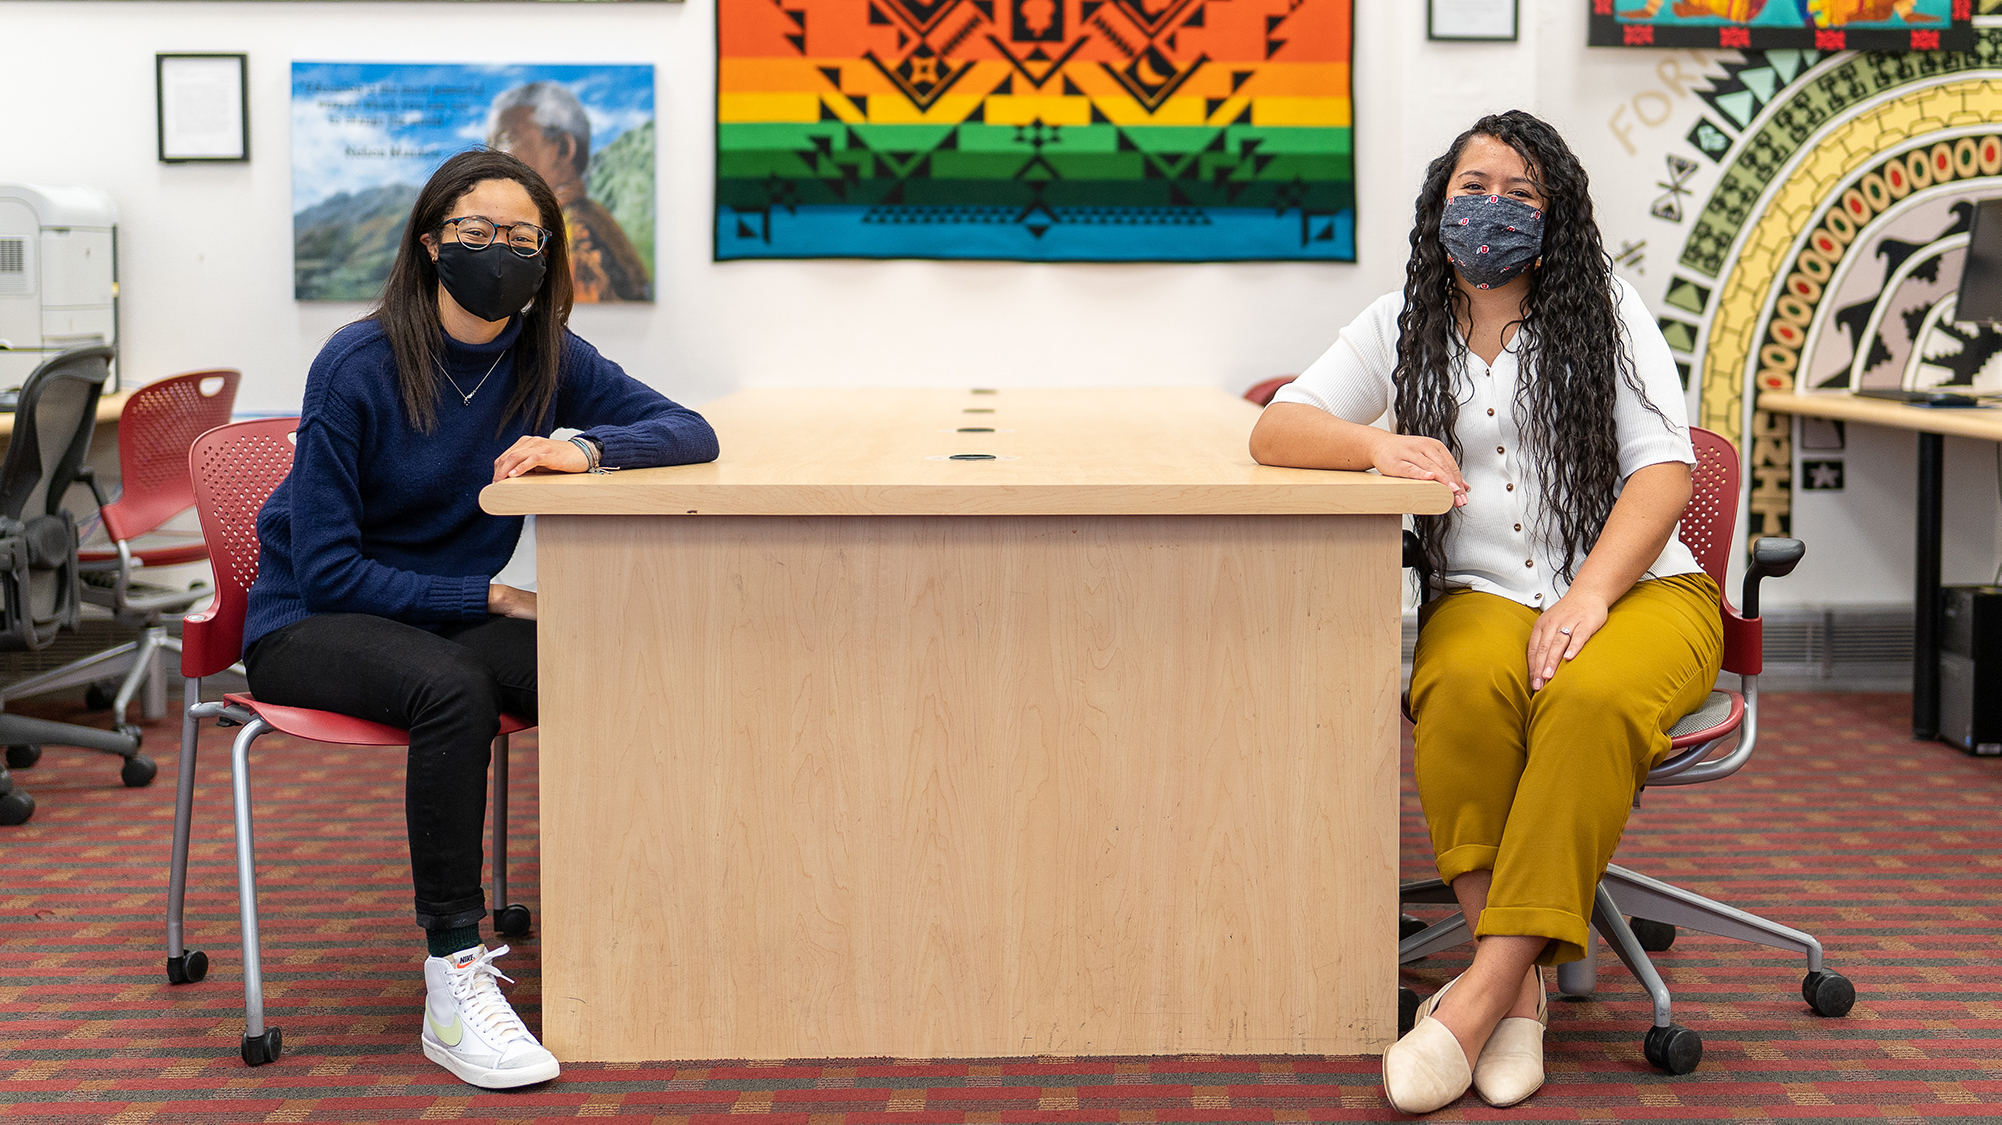 two women sit across table from one another wearing masks, facing camera.